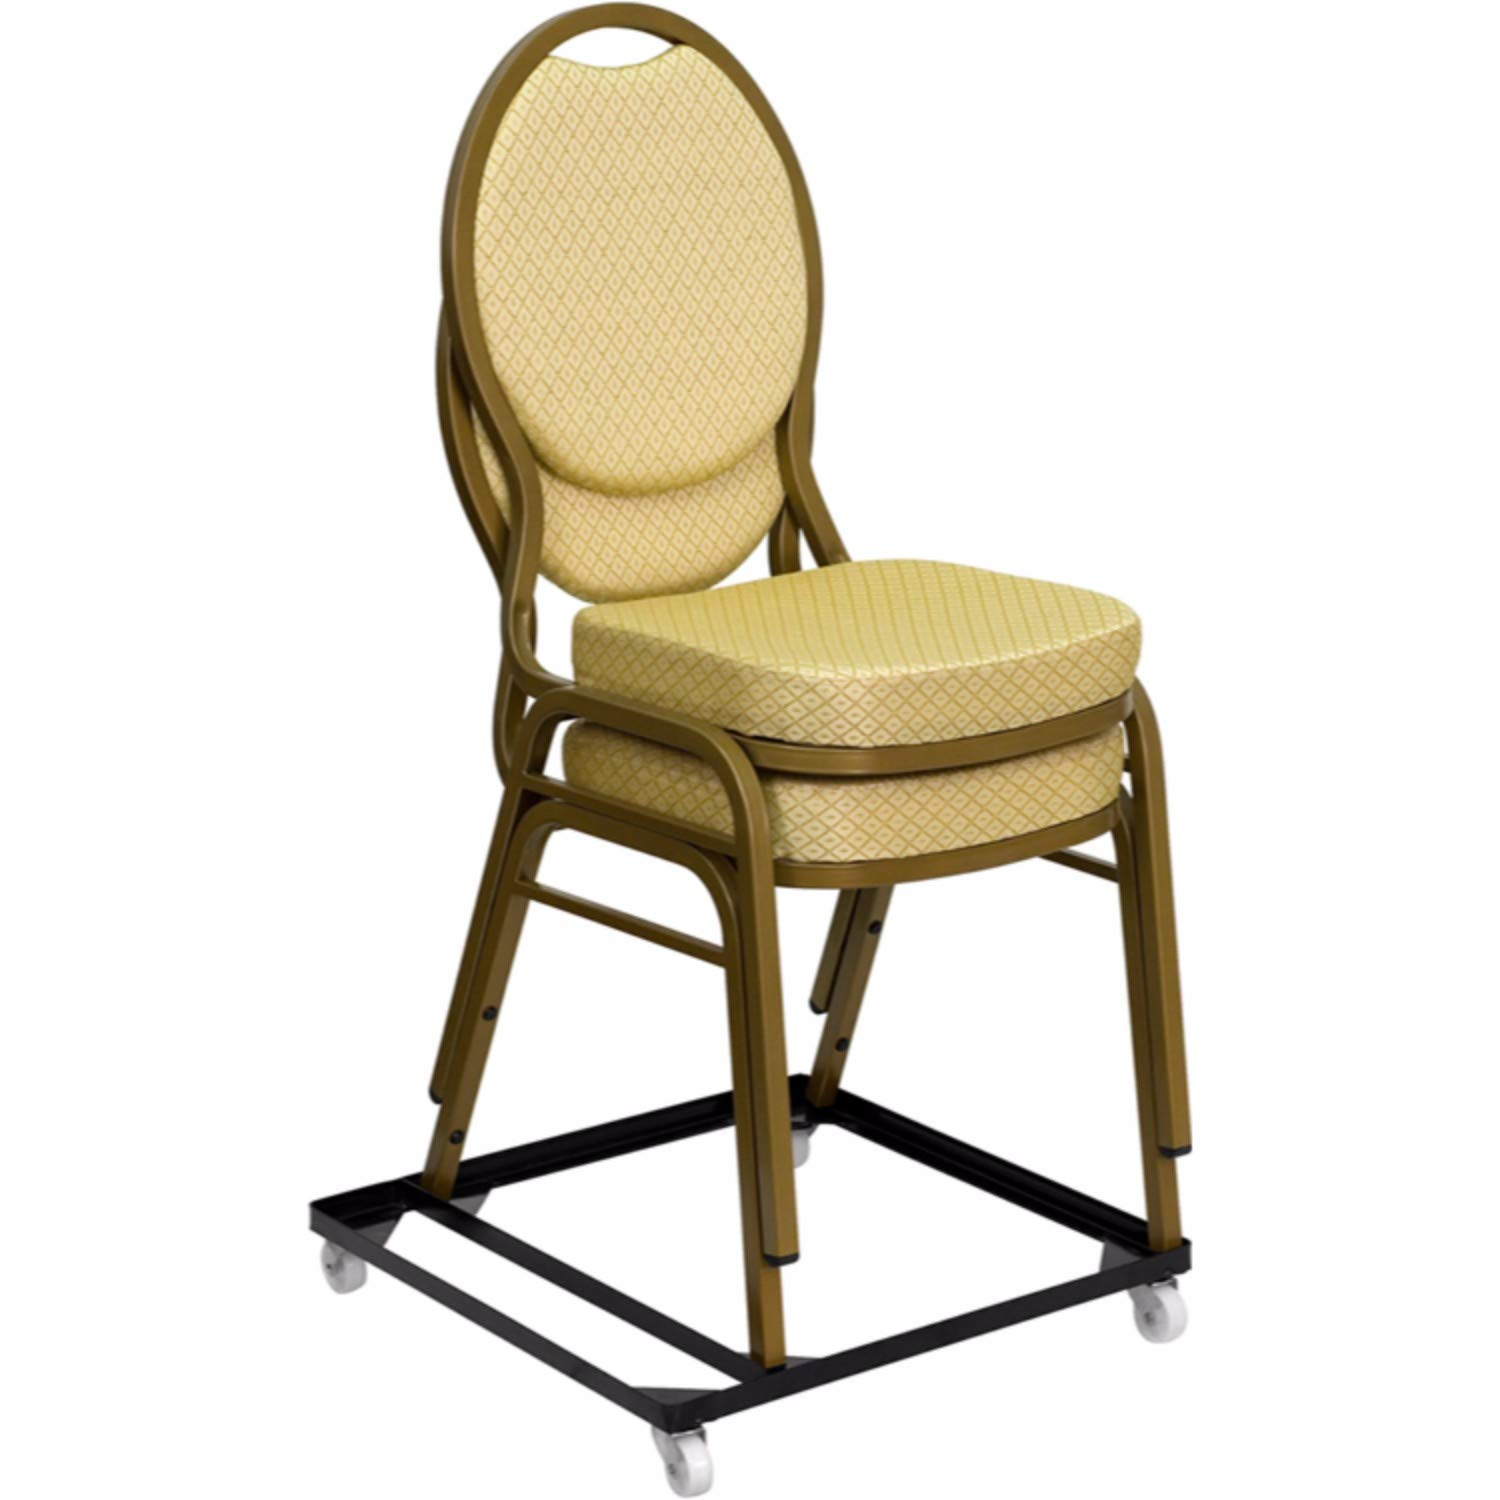 Offex of-FD-BAN-CH-Dolly-GG Hercules Series Steel Stack Chair and Church Chair Dolly